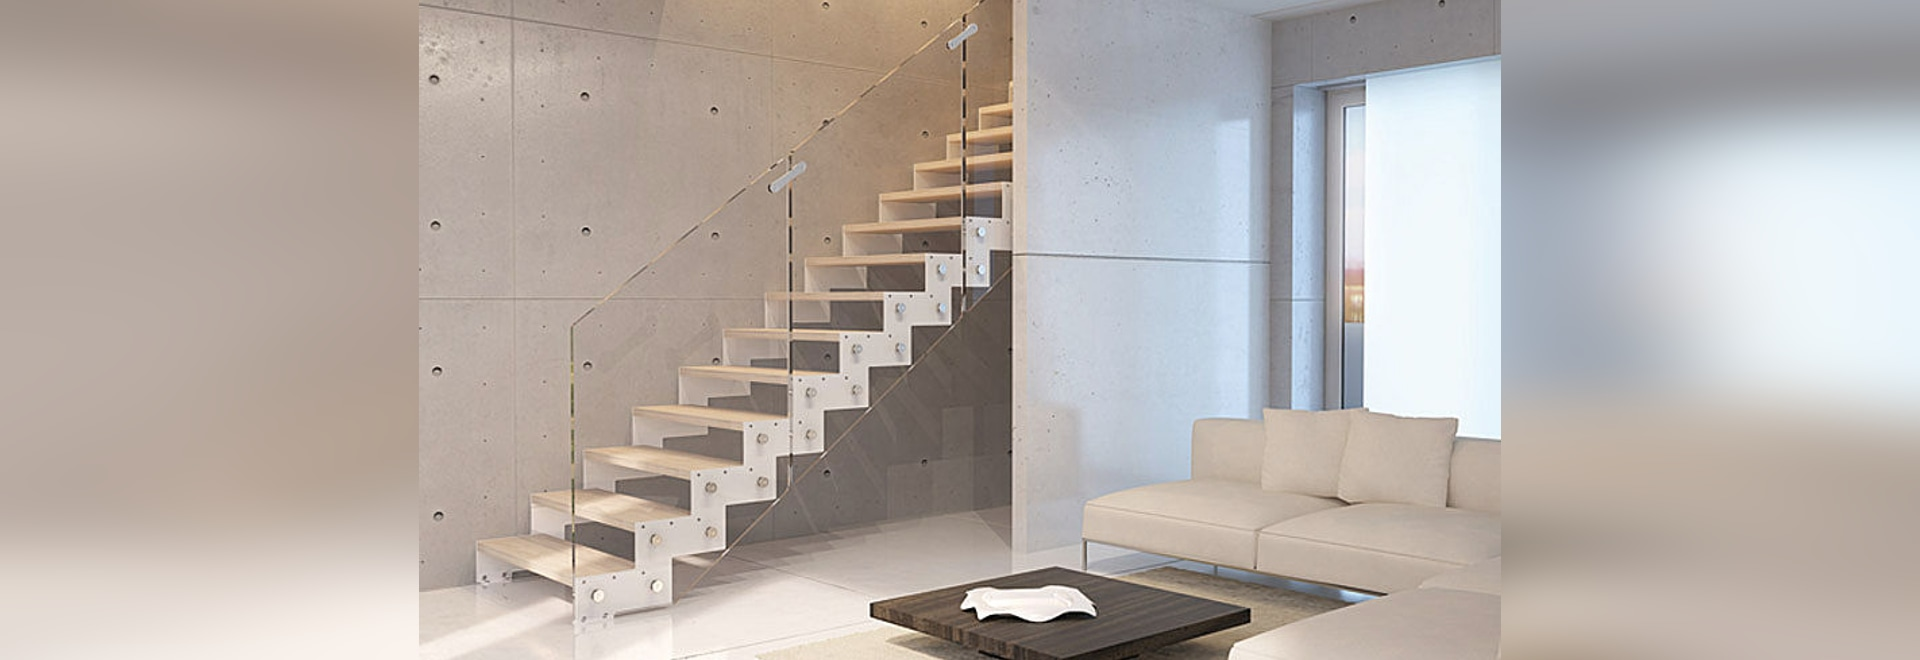 Rintal presents Nea, the steel staircase in which different materials is